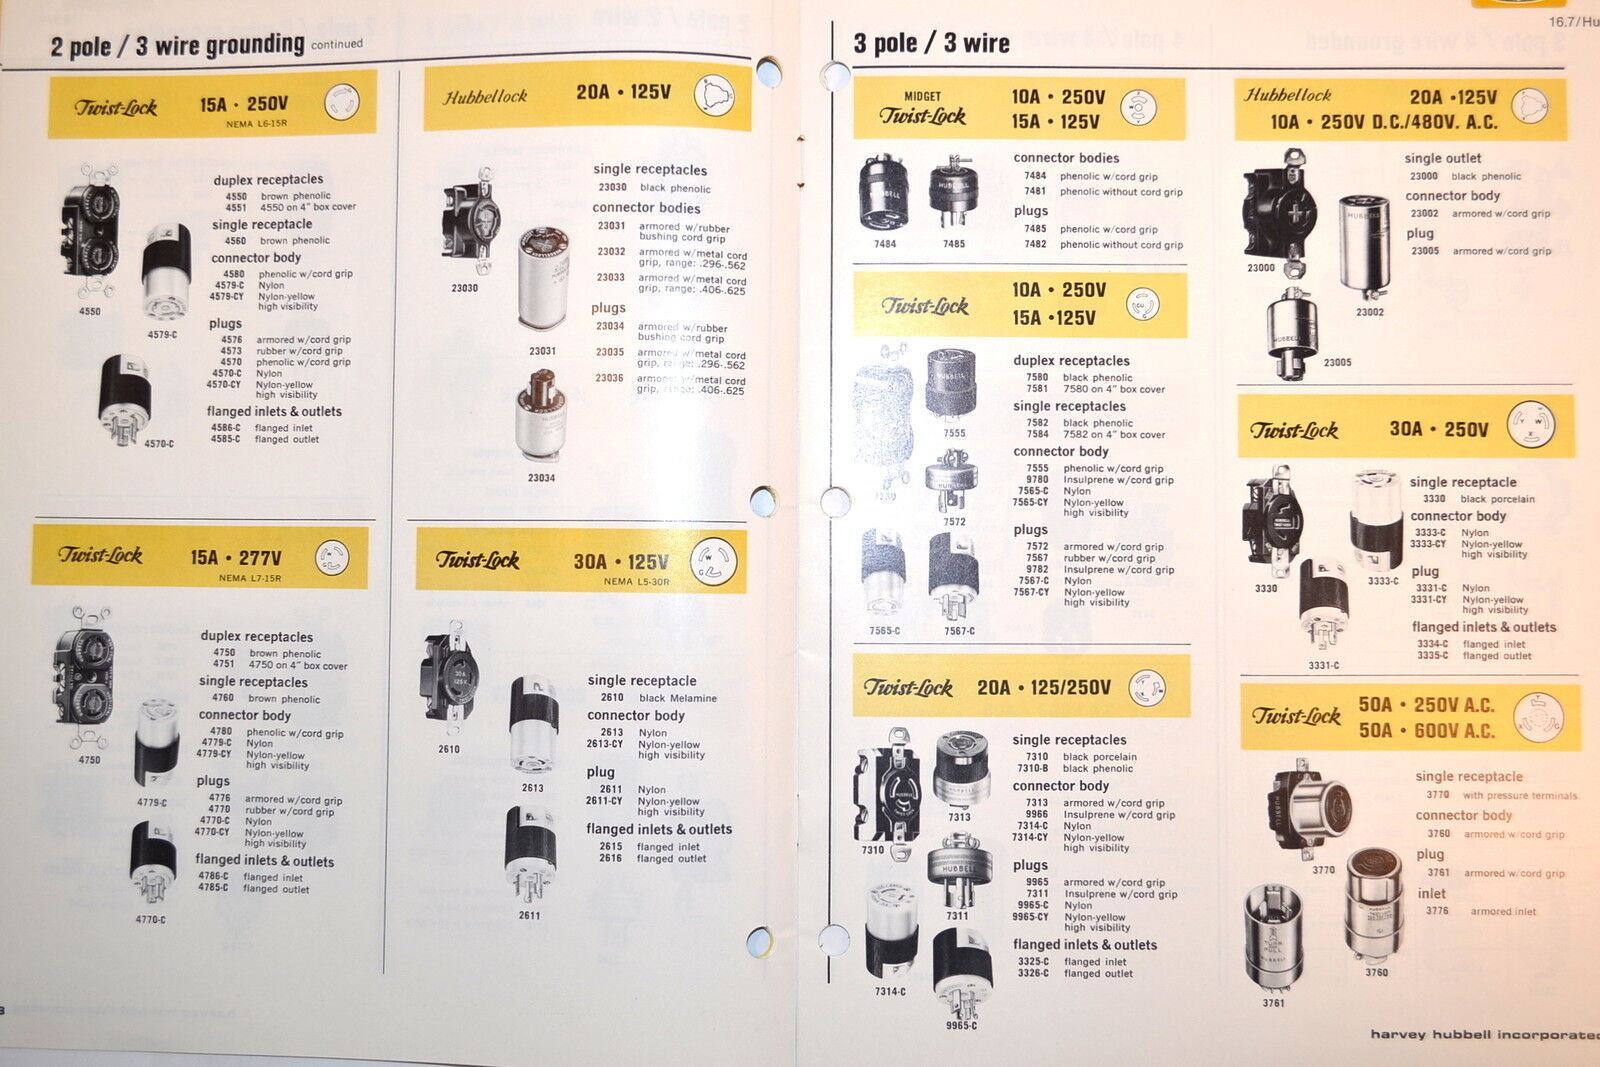 hubbell wiring devices catalog solidfonts hubwp26eh w proof cvr 1 g gfci cast alum horz wp26eh hubbell